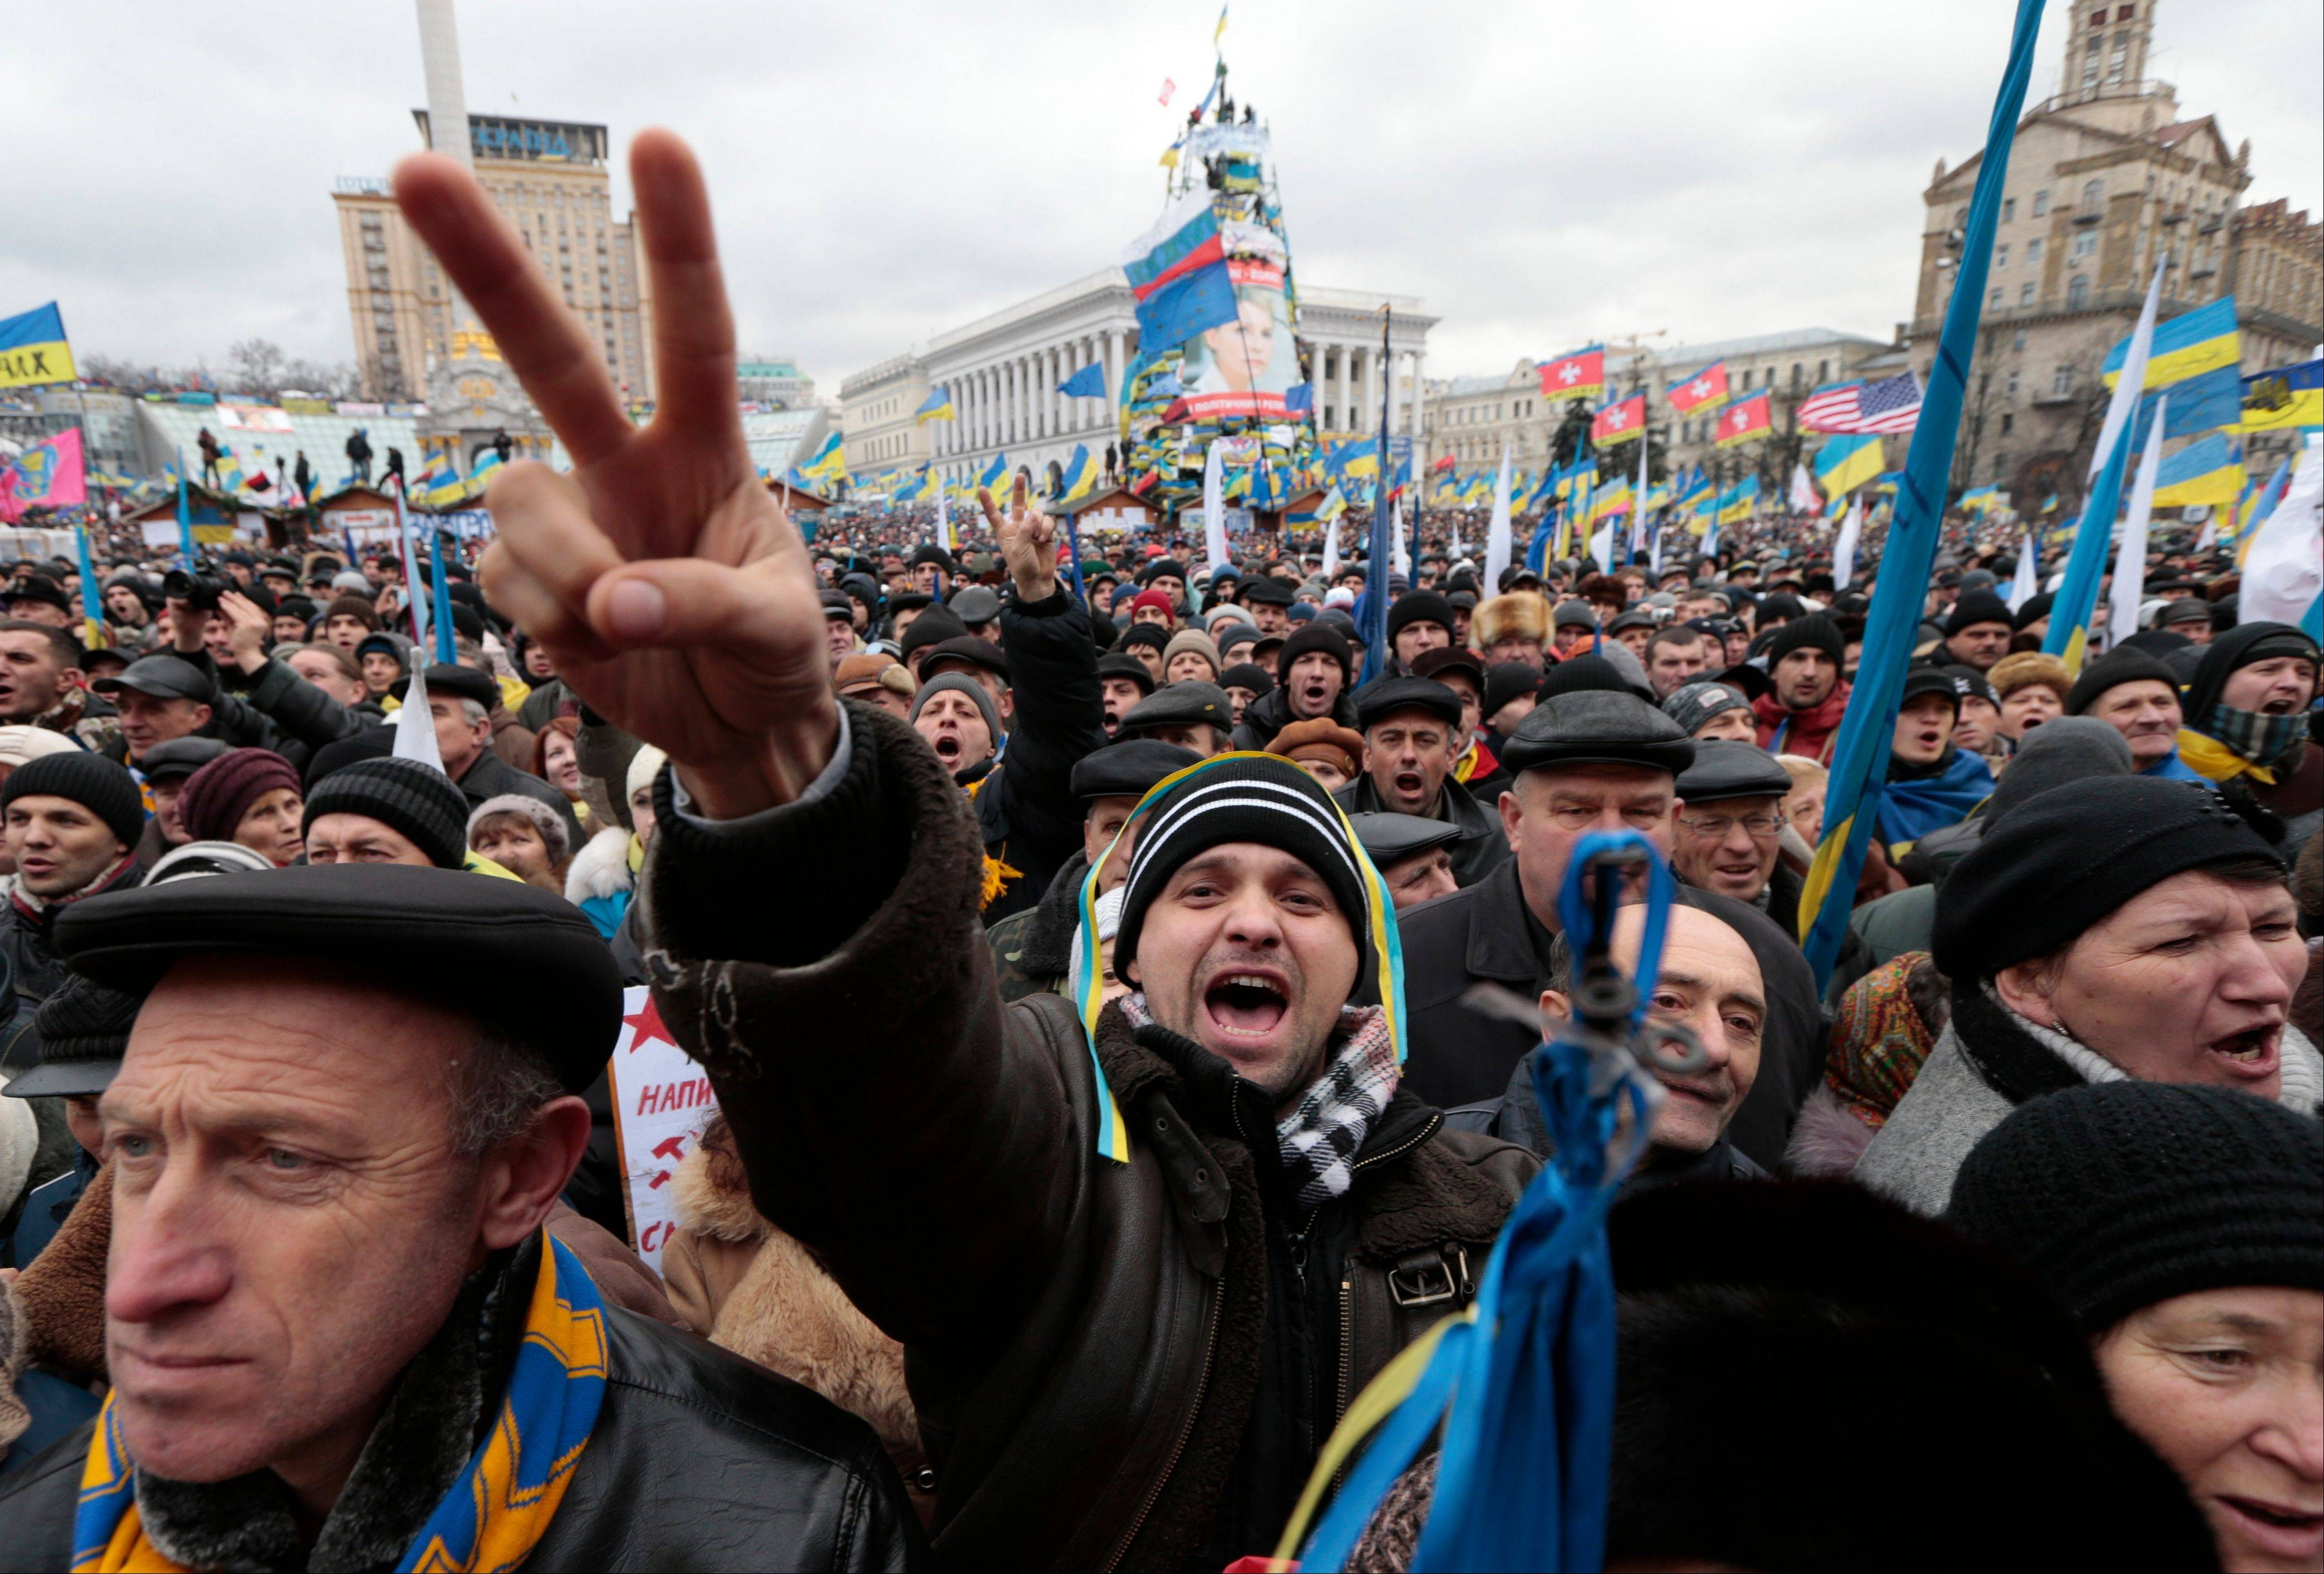 Pro-European Union activists shout slogans during a rally in the Independence Square, Kiev, Ukraine, Sunday. The third week of protests continue Sunday with an estimated 200,000 Ukrainians occupying central Kiev to denounce President Viktor Yanukovych�s decision to turn away from Europe and align this ex-Soviet republic with Russia.